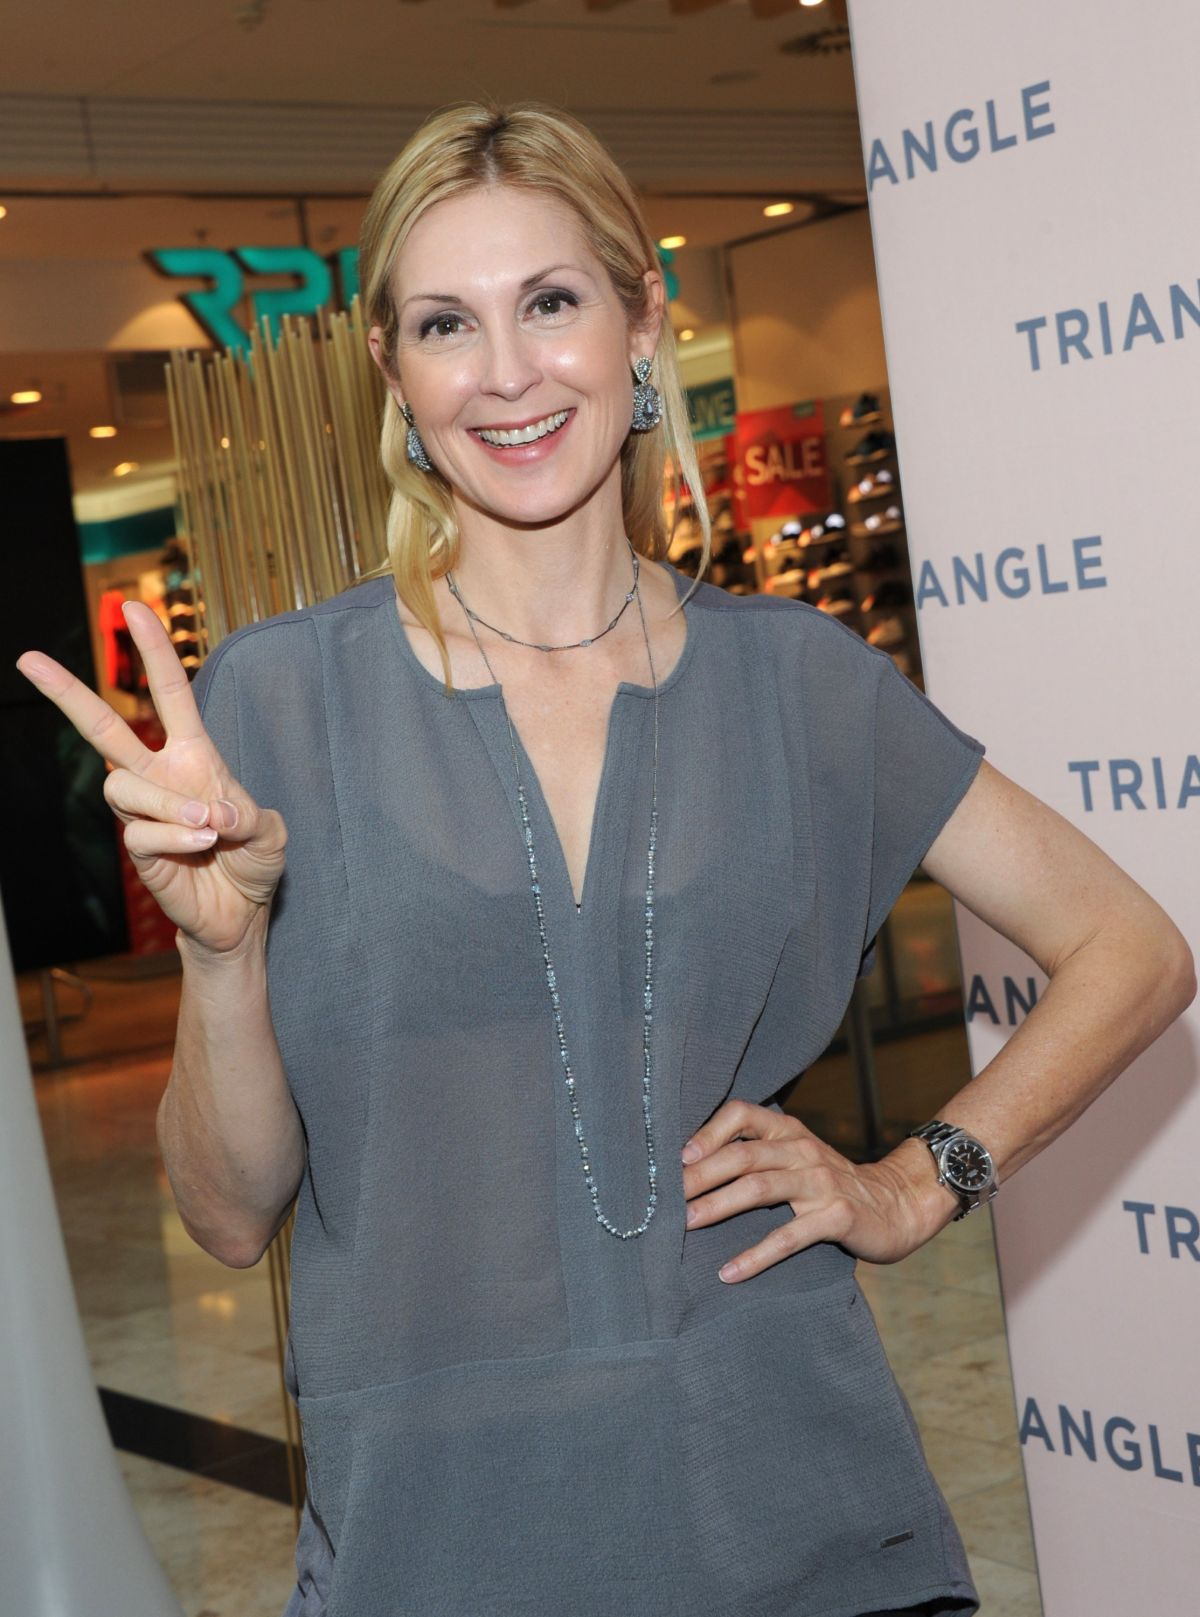 kelly rutherford at triangle store pre opening in munich 08 03 2016 1